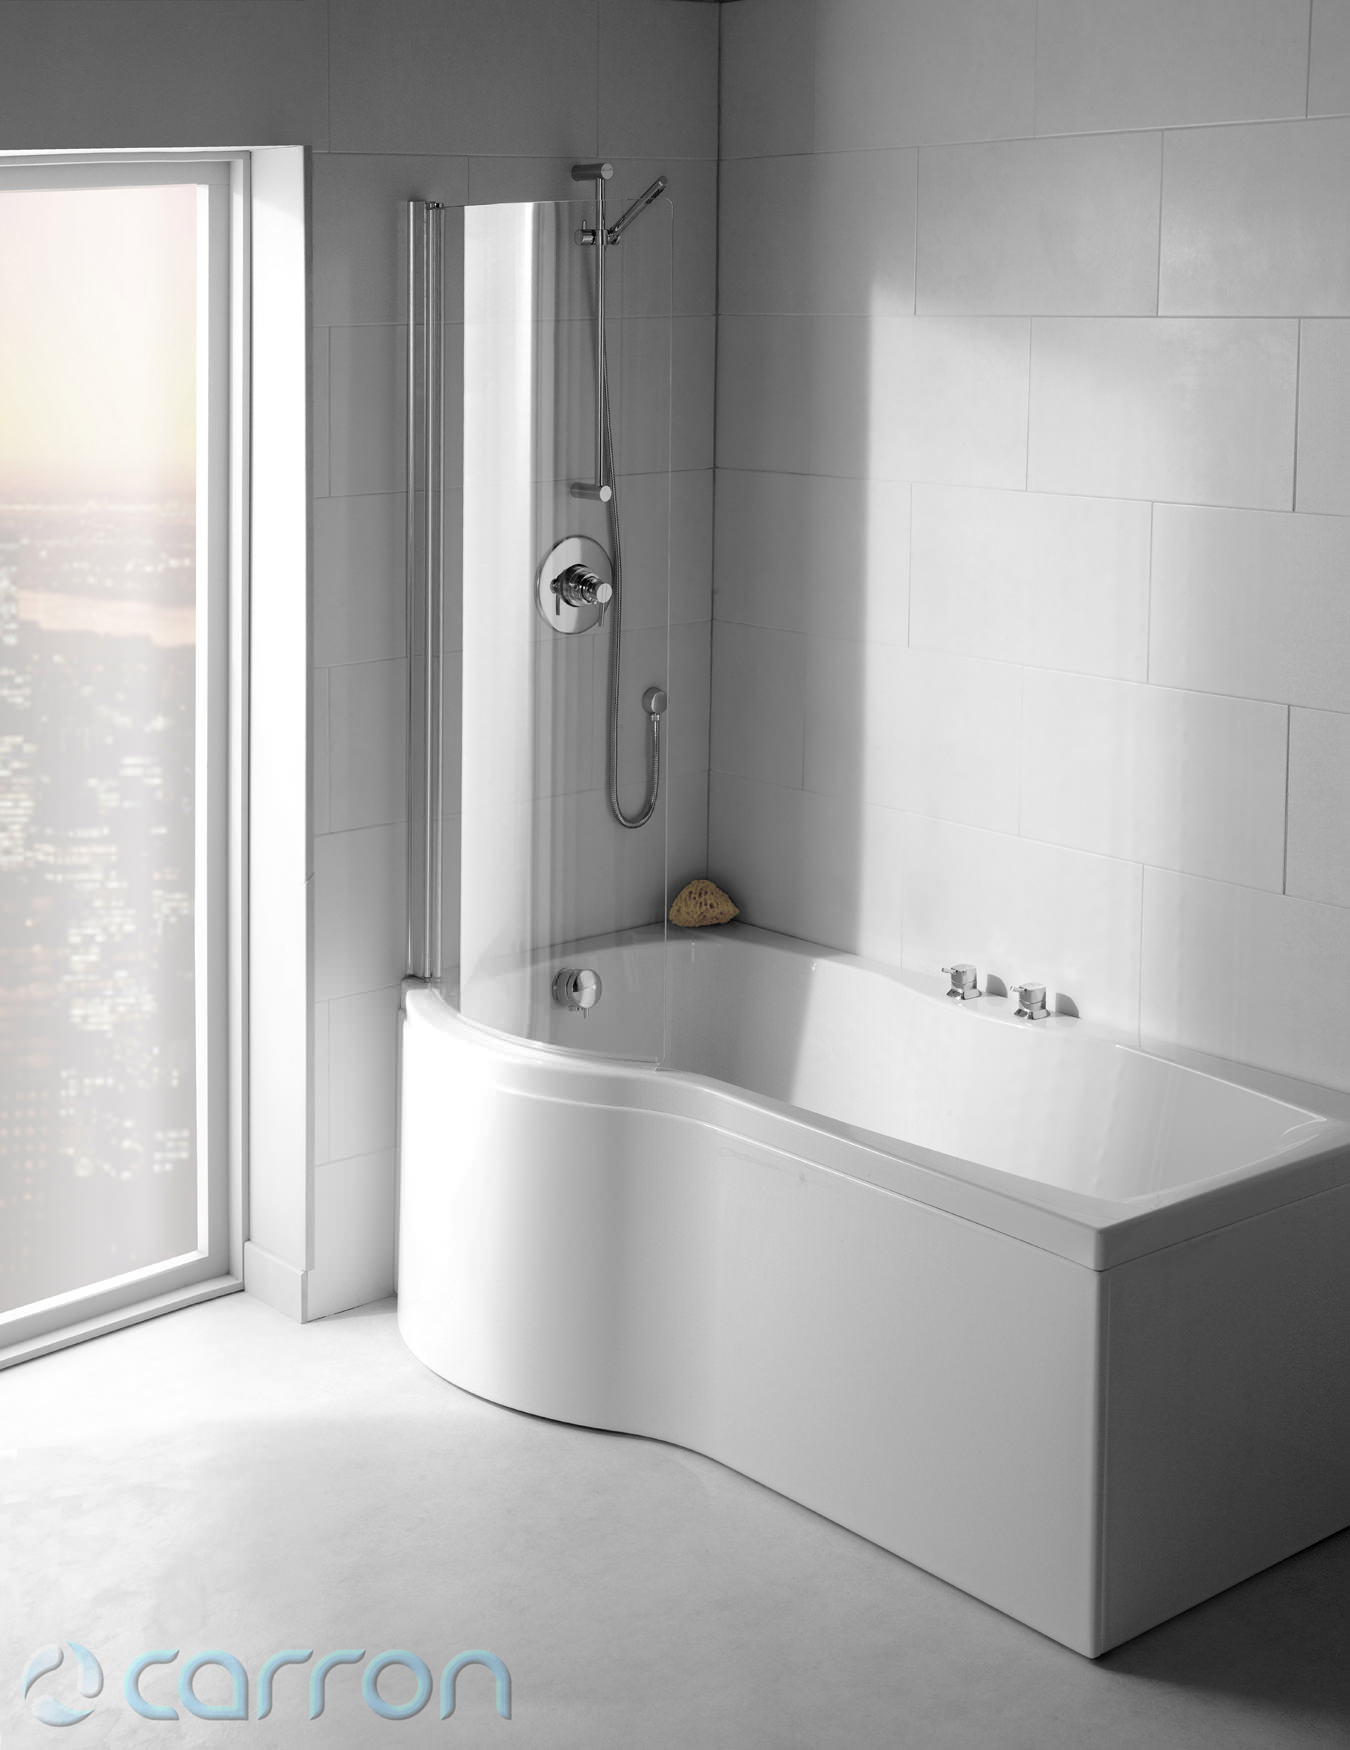 28 hand shower for bath vienna 1500 x 1050 offset left hand hand shower for bath carron sigma right hand shower bath 1800 x 900mm